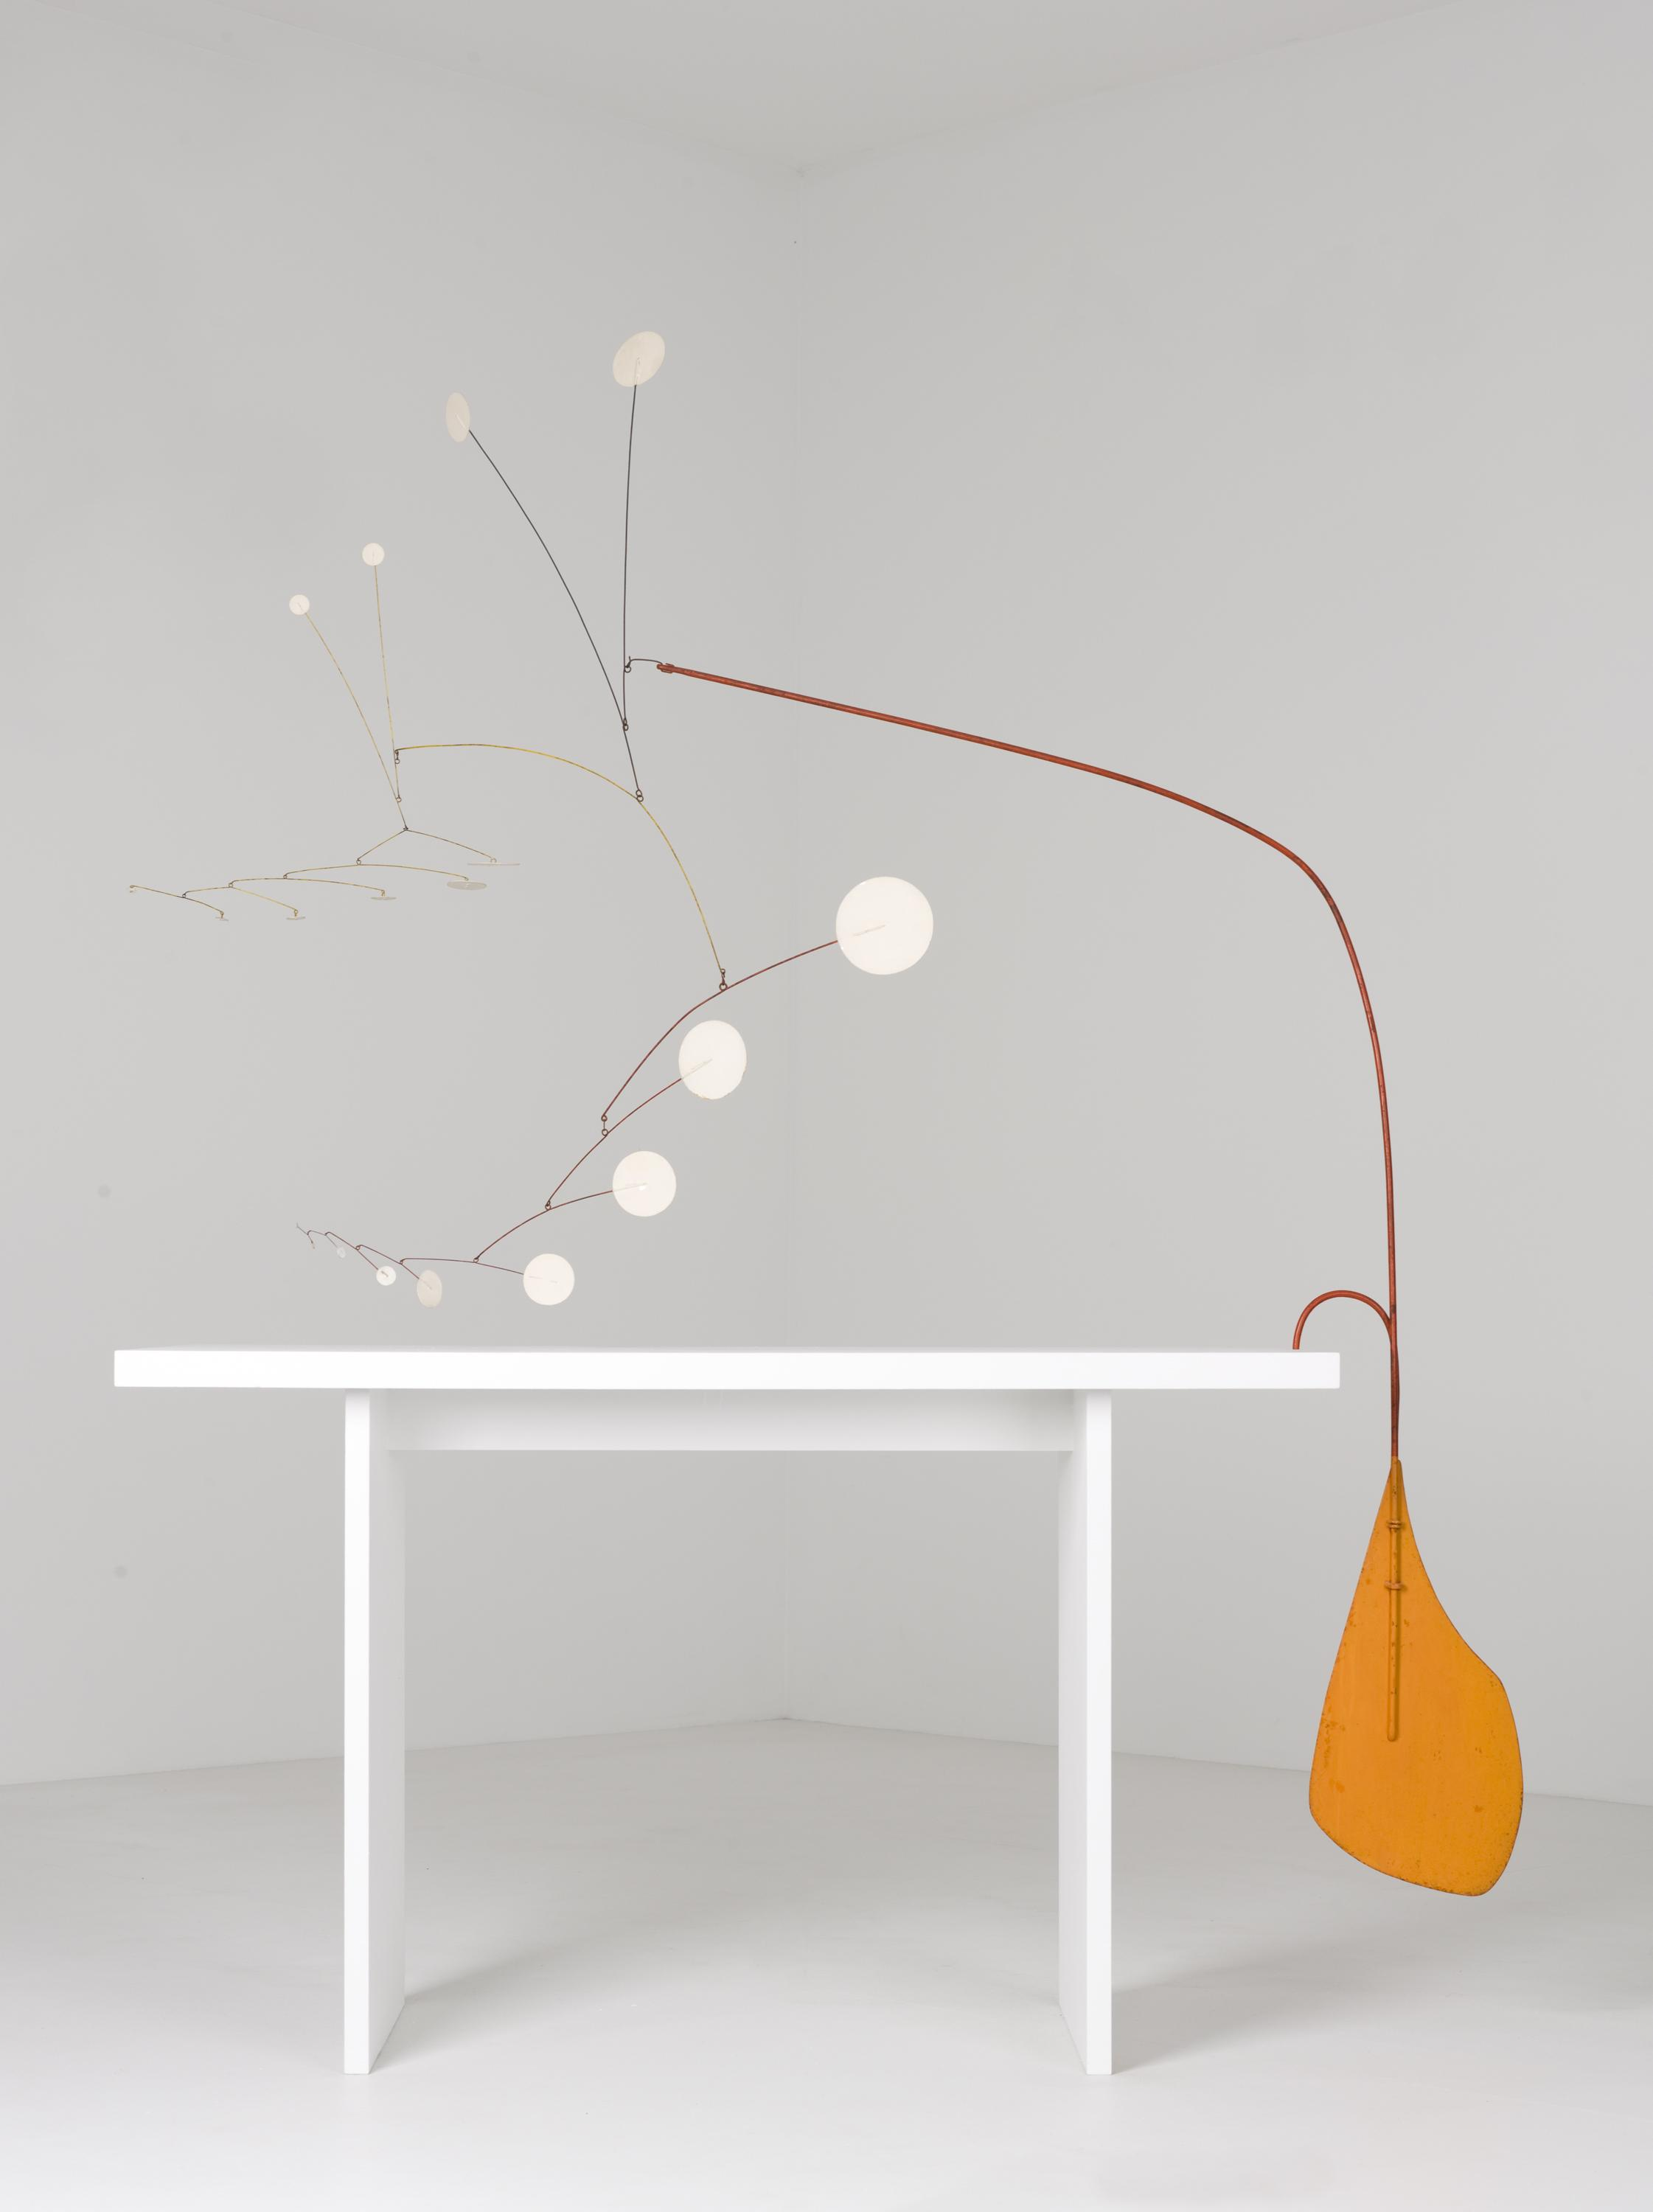 Small white circles connected by thin wire balance opposite a thicker orange wire weighted by an orange rudder-like shape hanging from the edge of a white table.